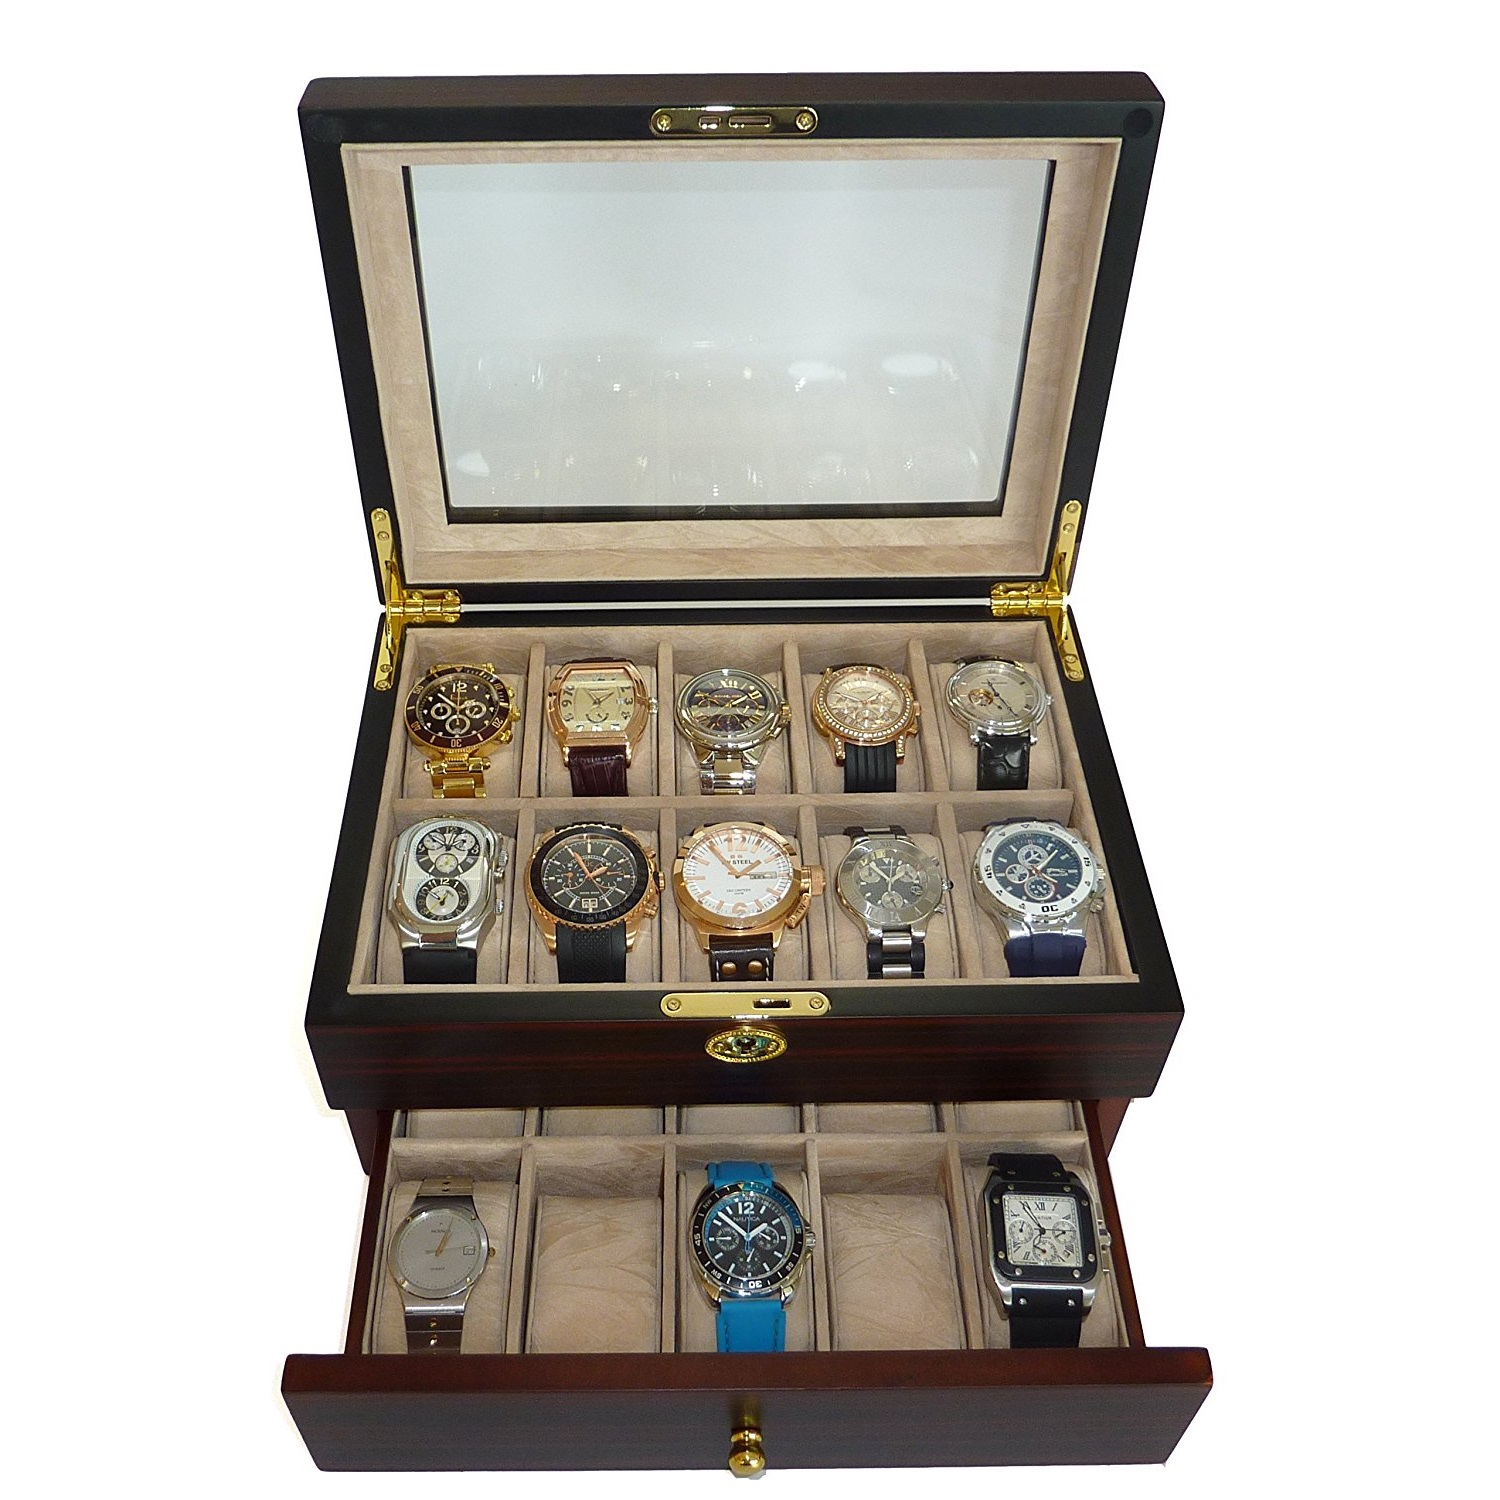 TimelyBuys Wooden Watch Box